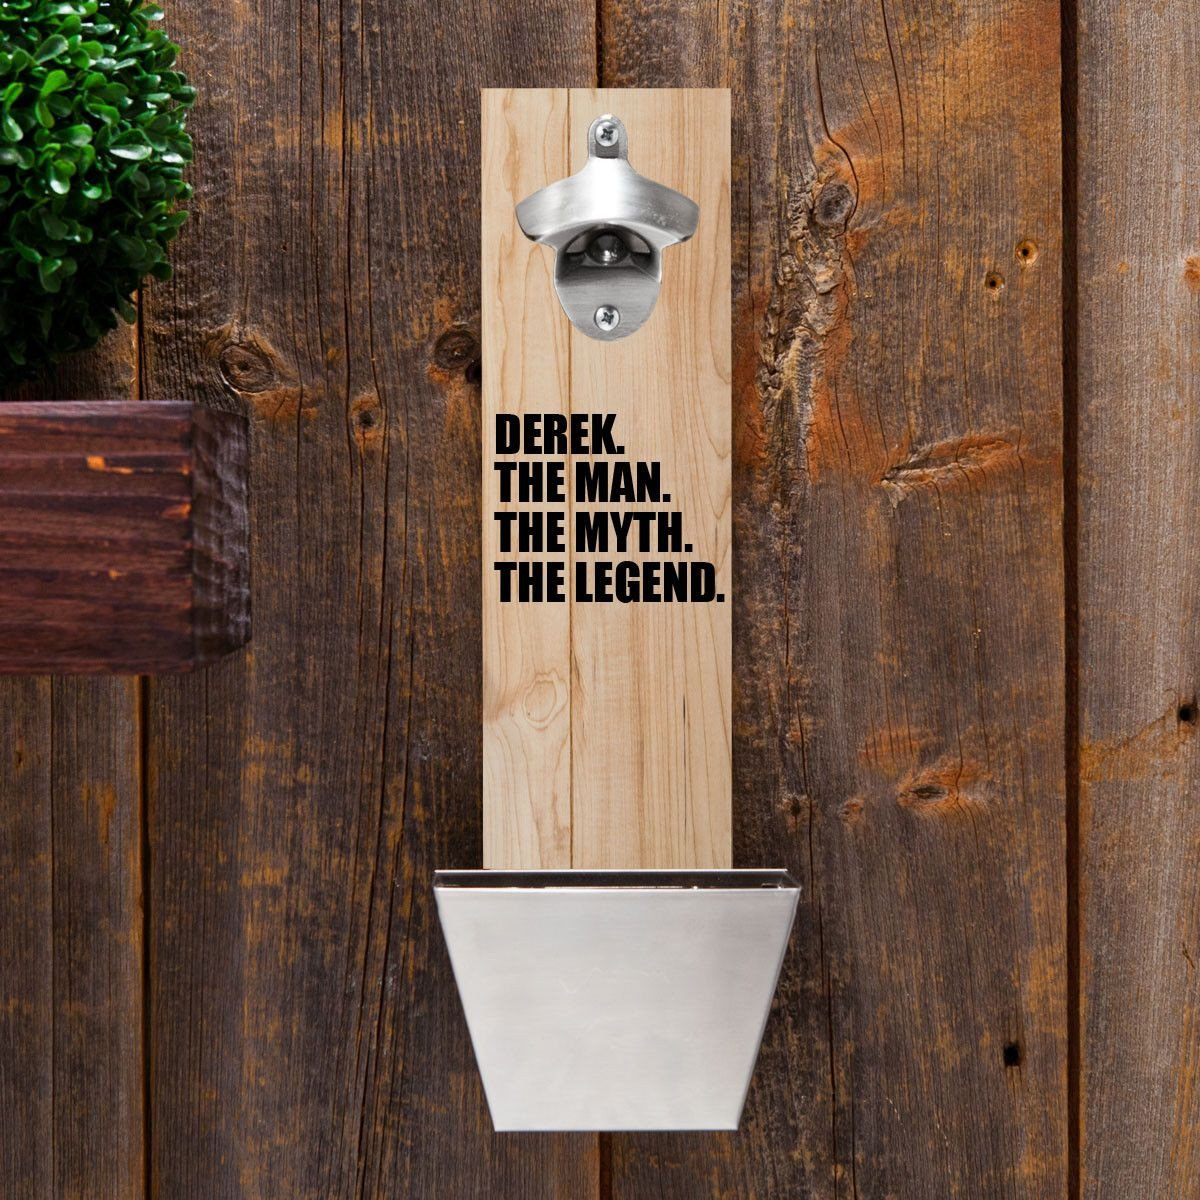 The-Man-The-Myth-The-Legend-Wooden-Wall-Mounted-Bottle-Opener